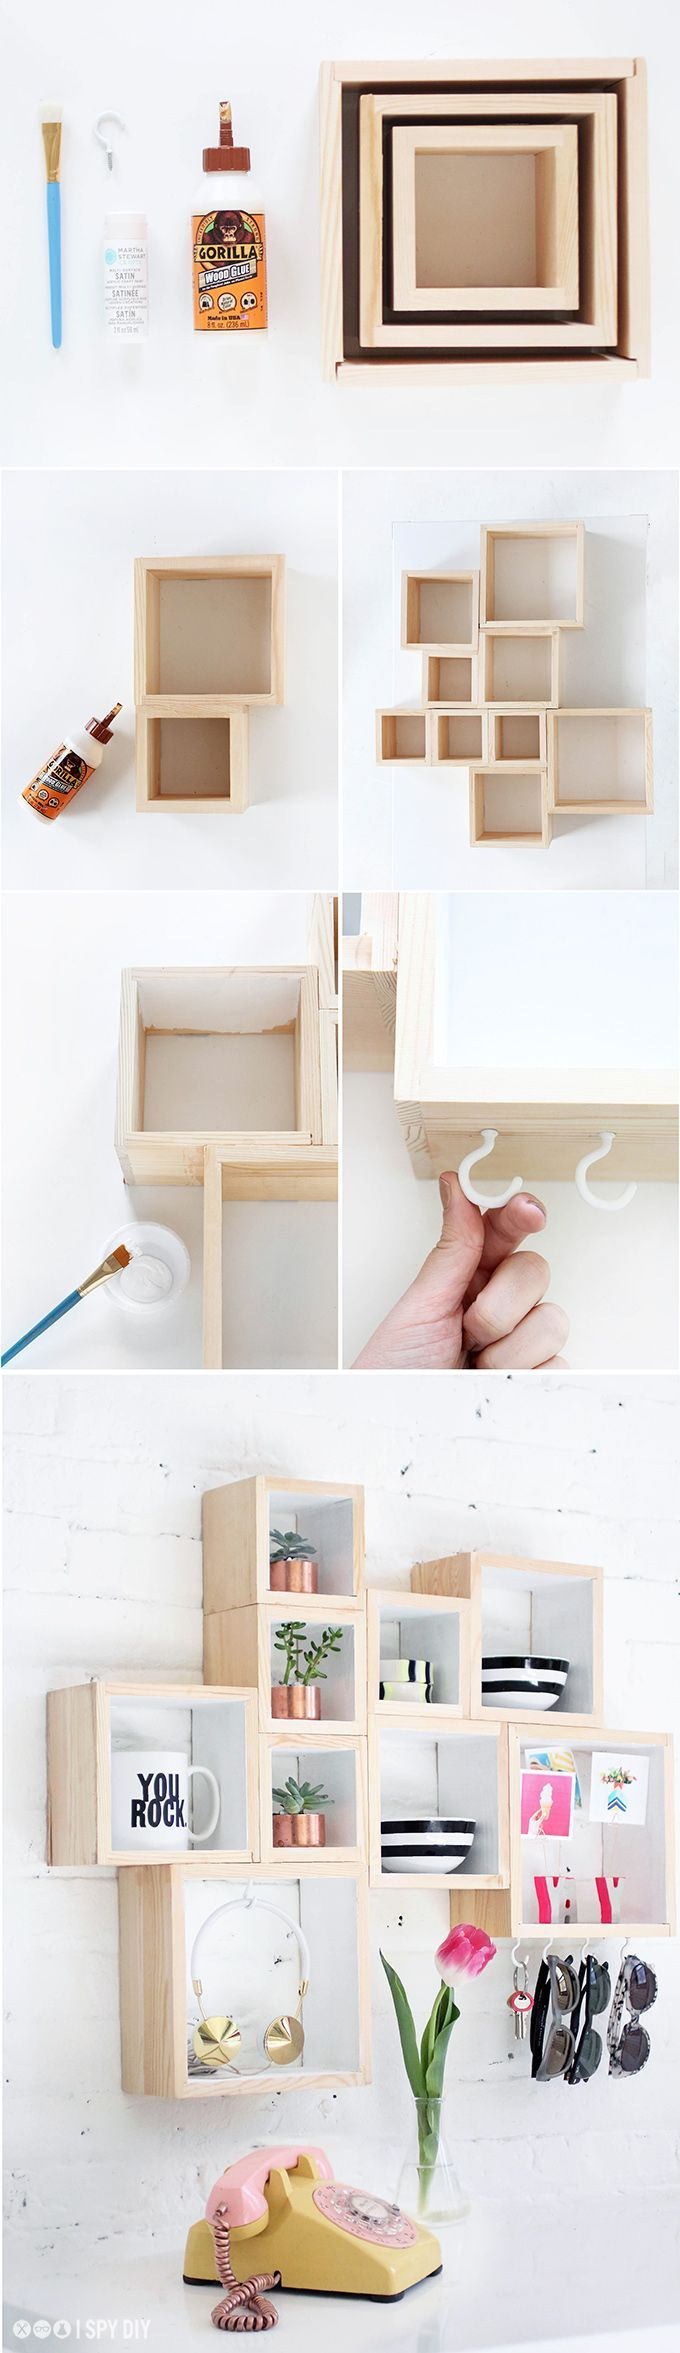 Wall box storage tutorial